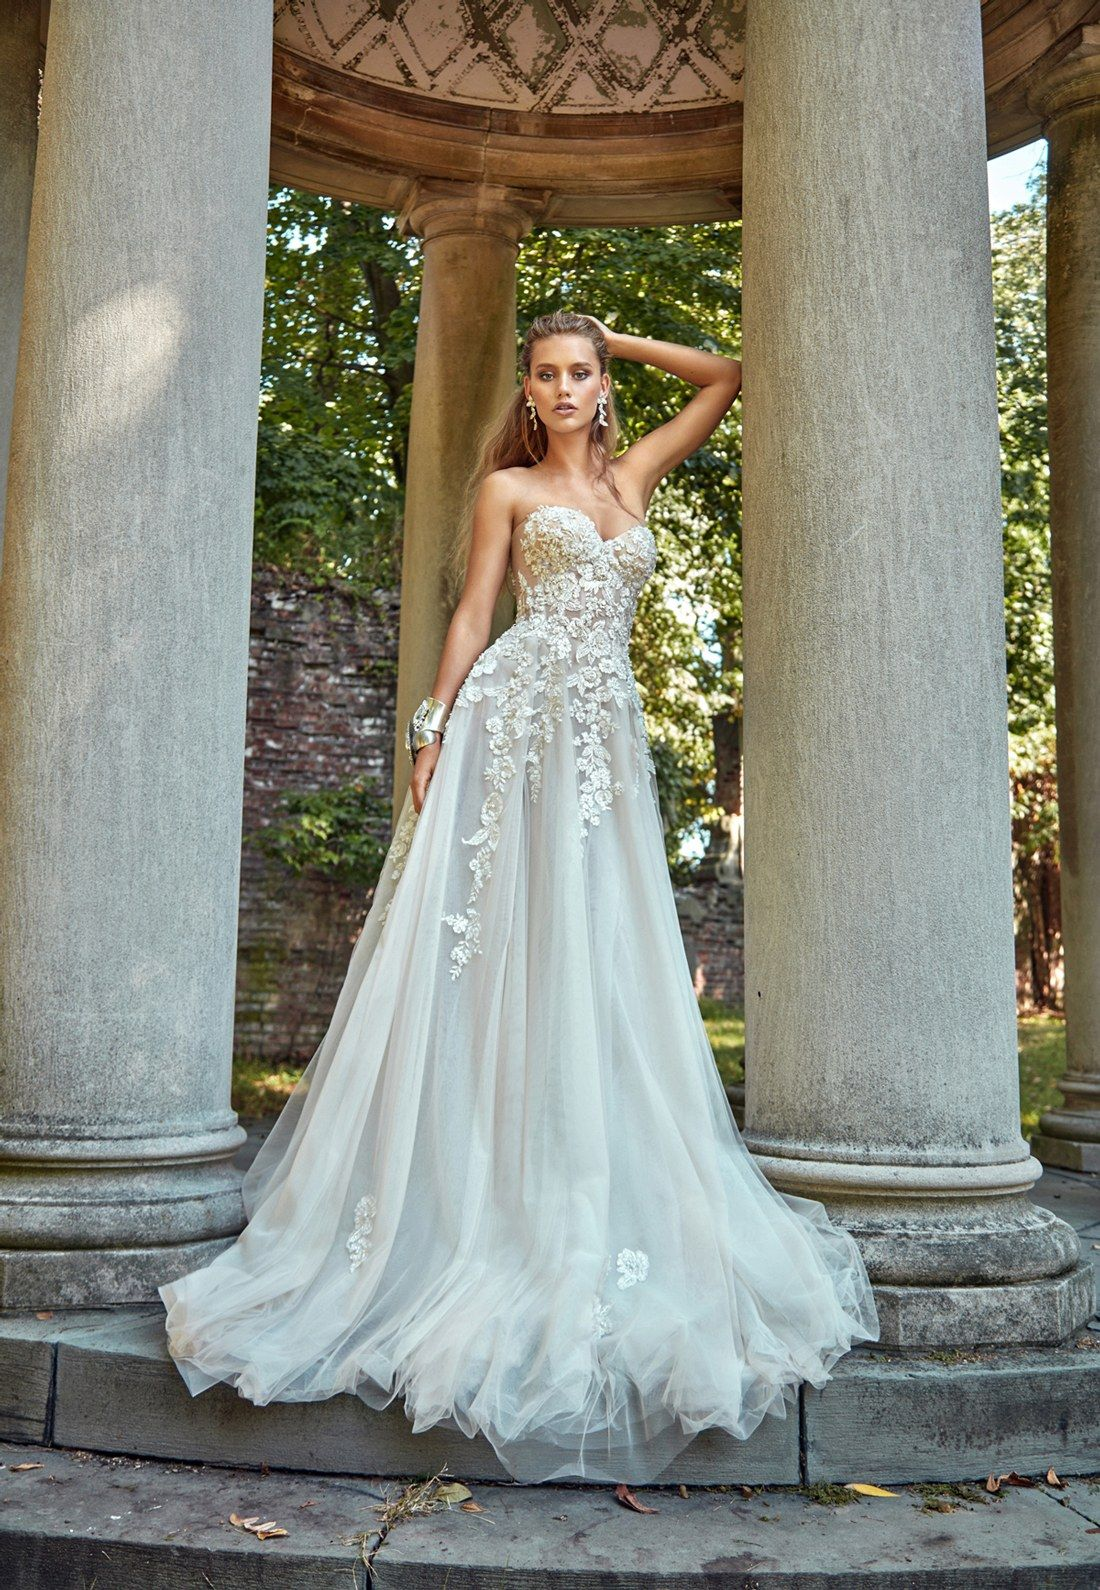 76 Strapless Wedding Dresses For Every Bridal Style | Brides ...